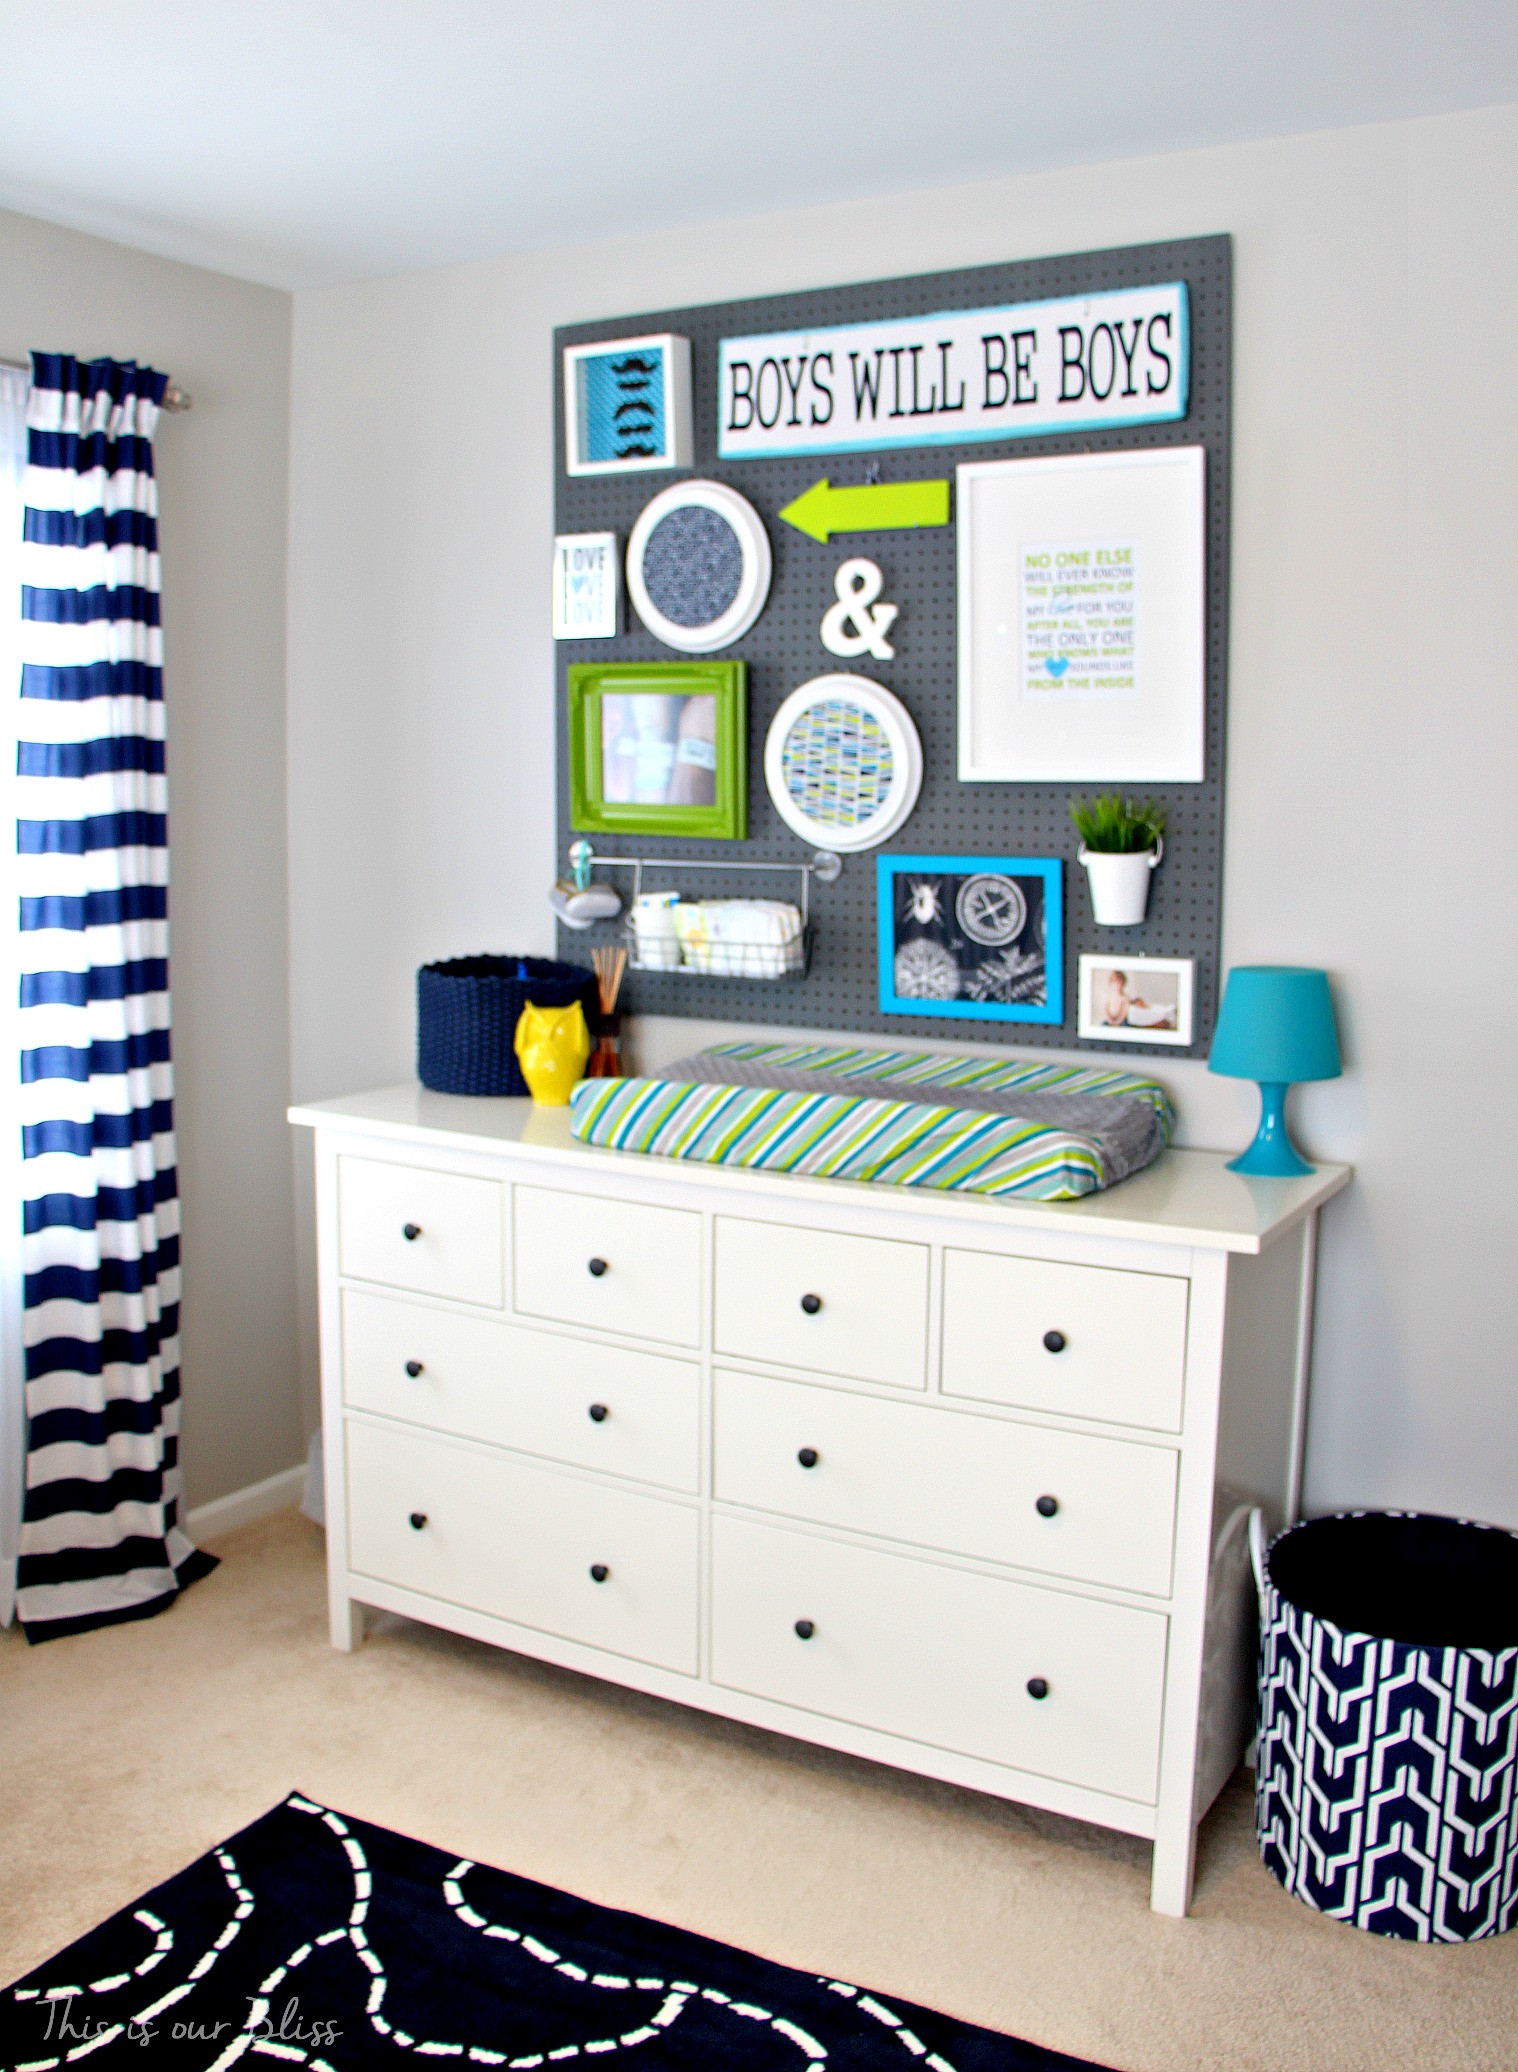 Diy Baby Nursery Decor  This is our Bliss IHeart Organizing This is our Bliss